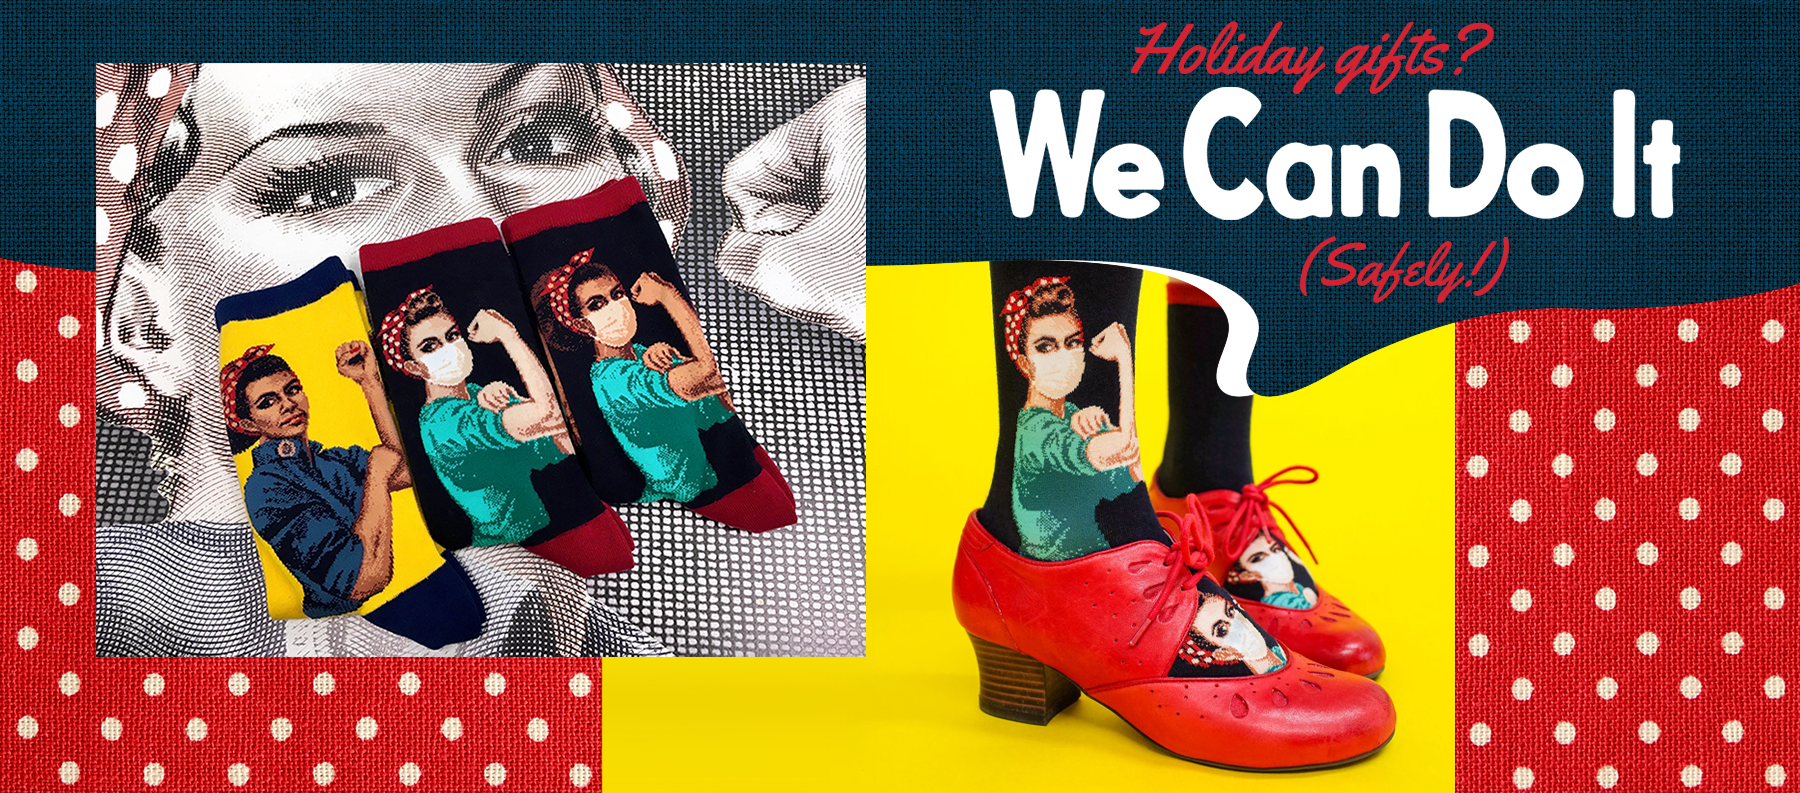 Novelty socks with images of Rosie the Riveter including Black Rosie with a Black power salute and a nurse Rosie the Riveter wearing a face mask.